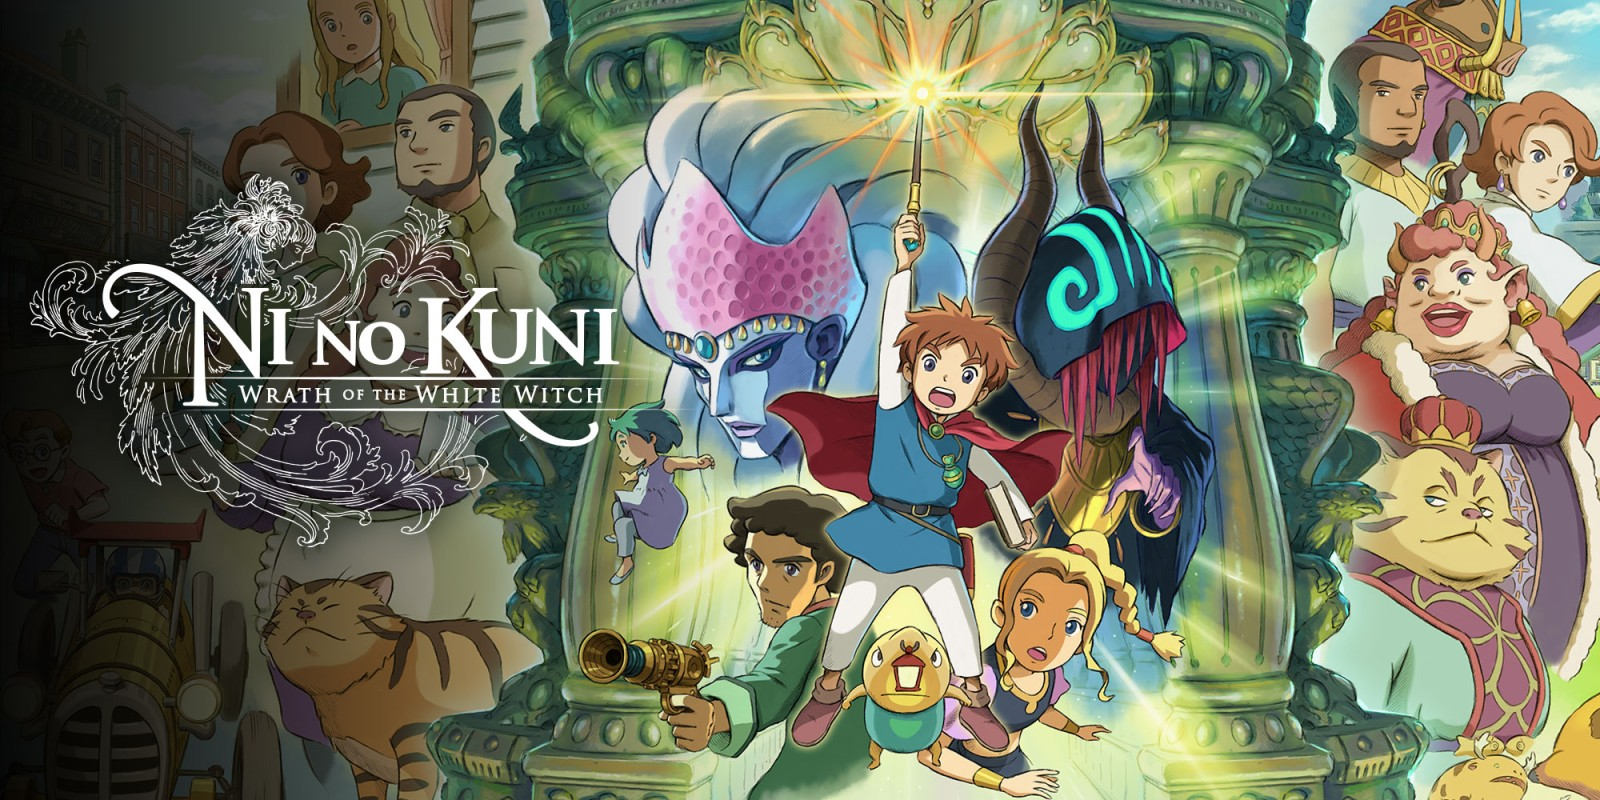 Today's Best Game Deals: Ni no Kuni Switch $30, Shovel Knight from $5, more - 9to5Toys